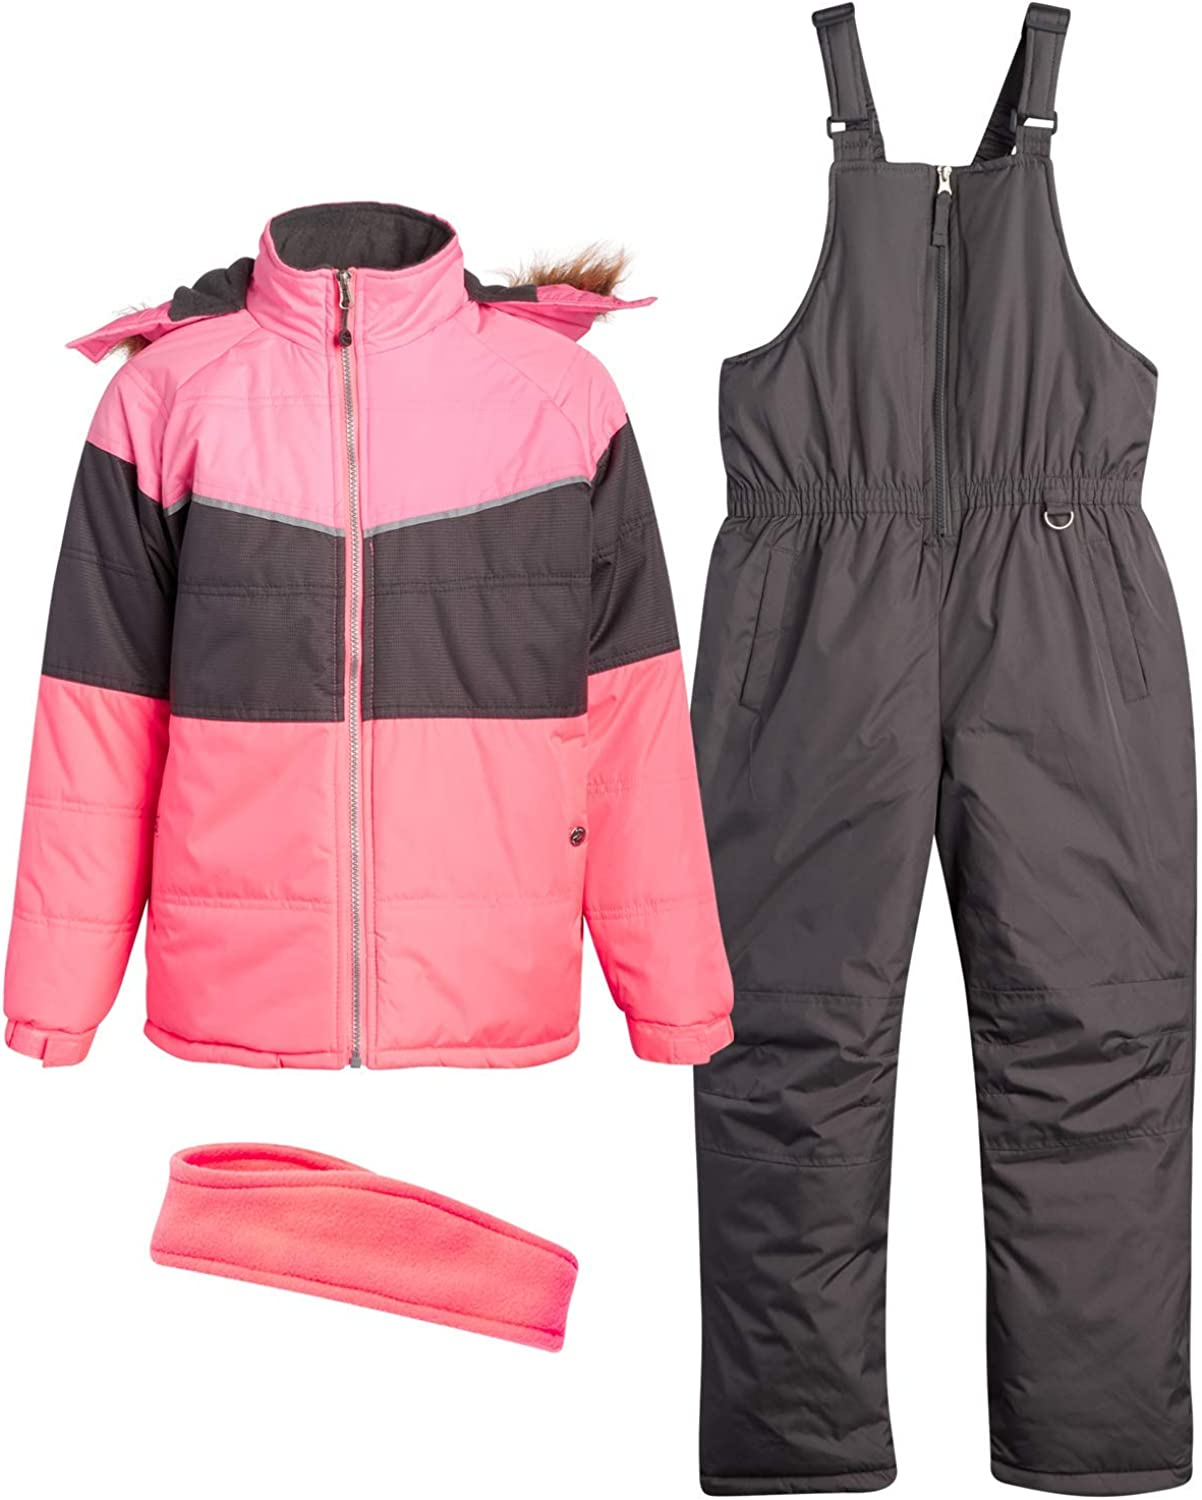 Pink Platinum Girls' Snowsuit - Water Resistant Fleece Lined Winter Ski Jacket and Snow Pants Overall Set (Toddlers/Girls)